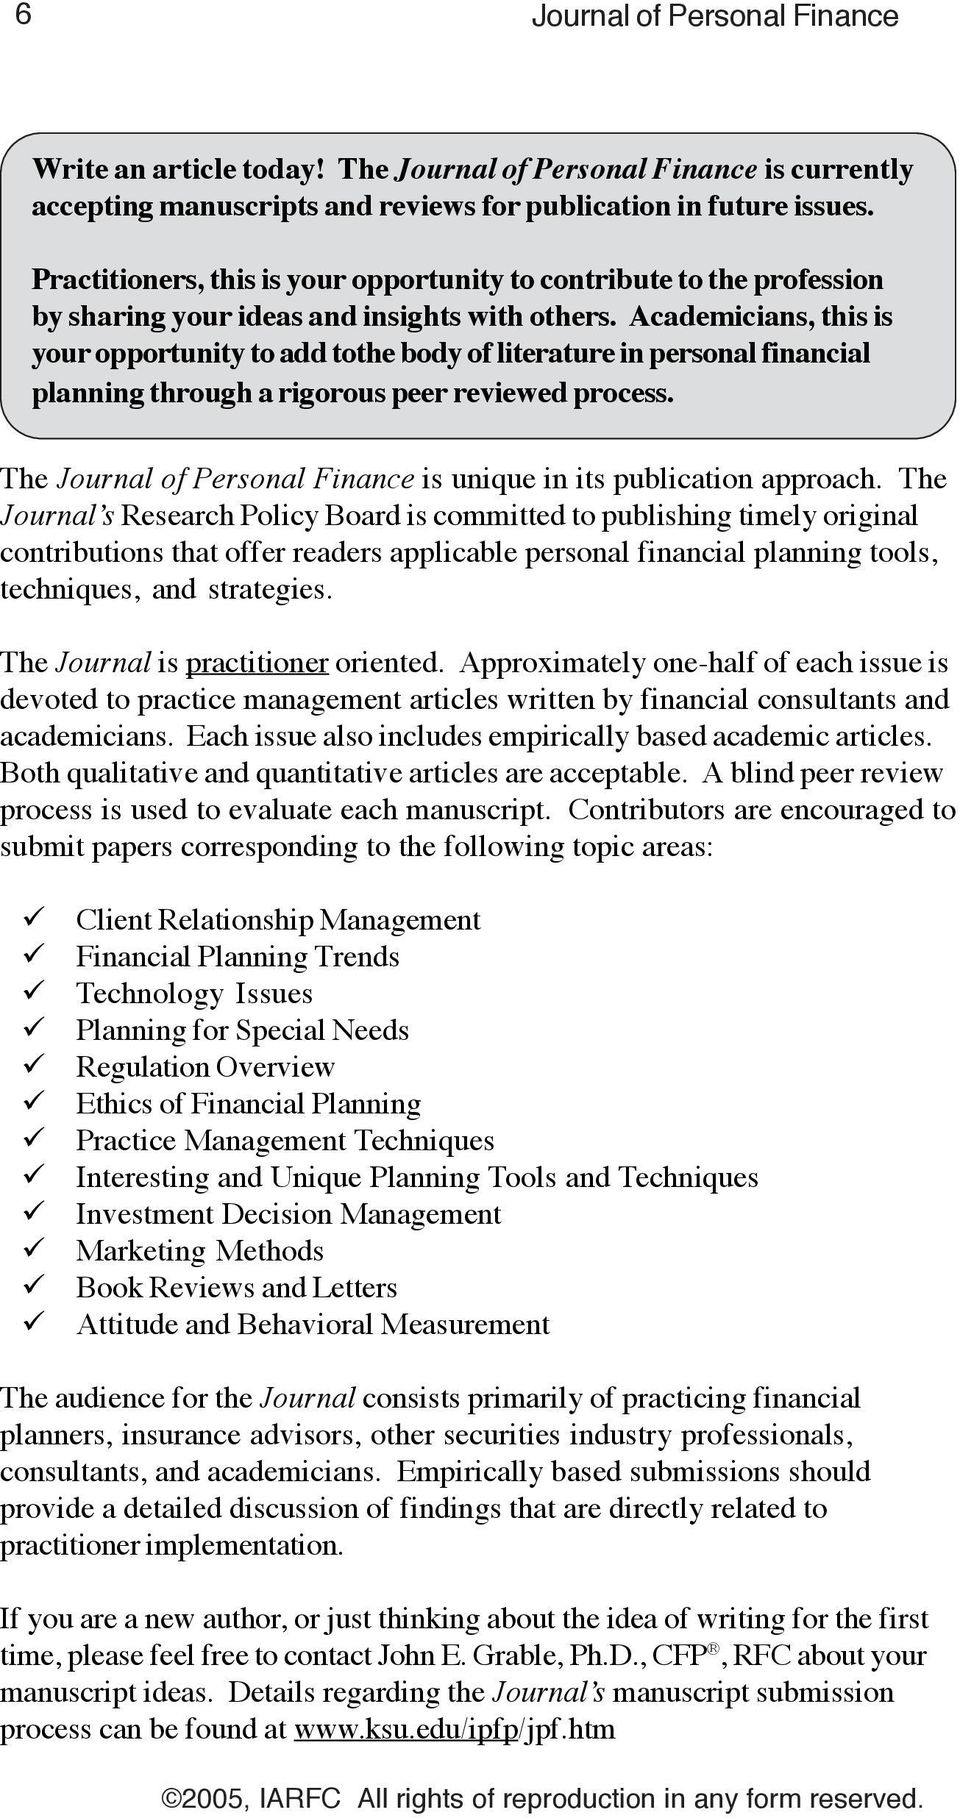 Journal of Personal Finance  Tools, Techniques, Strategies